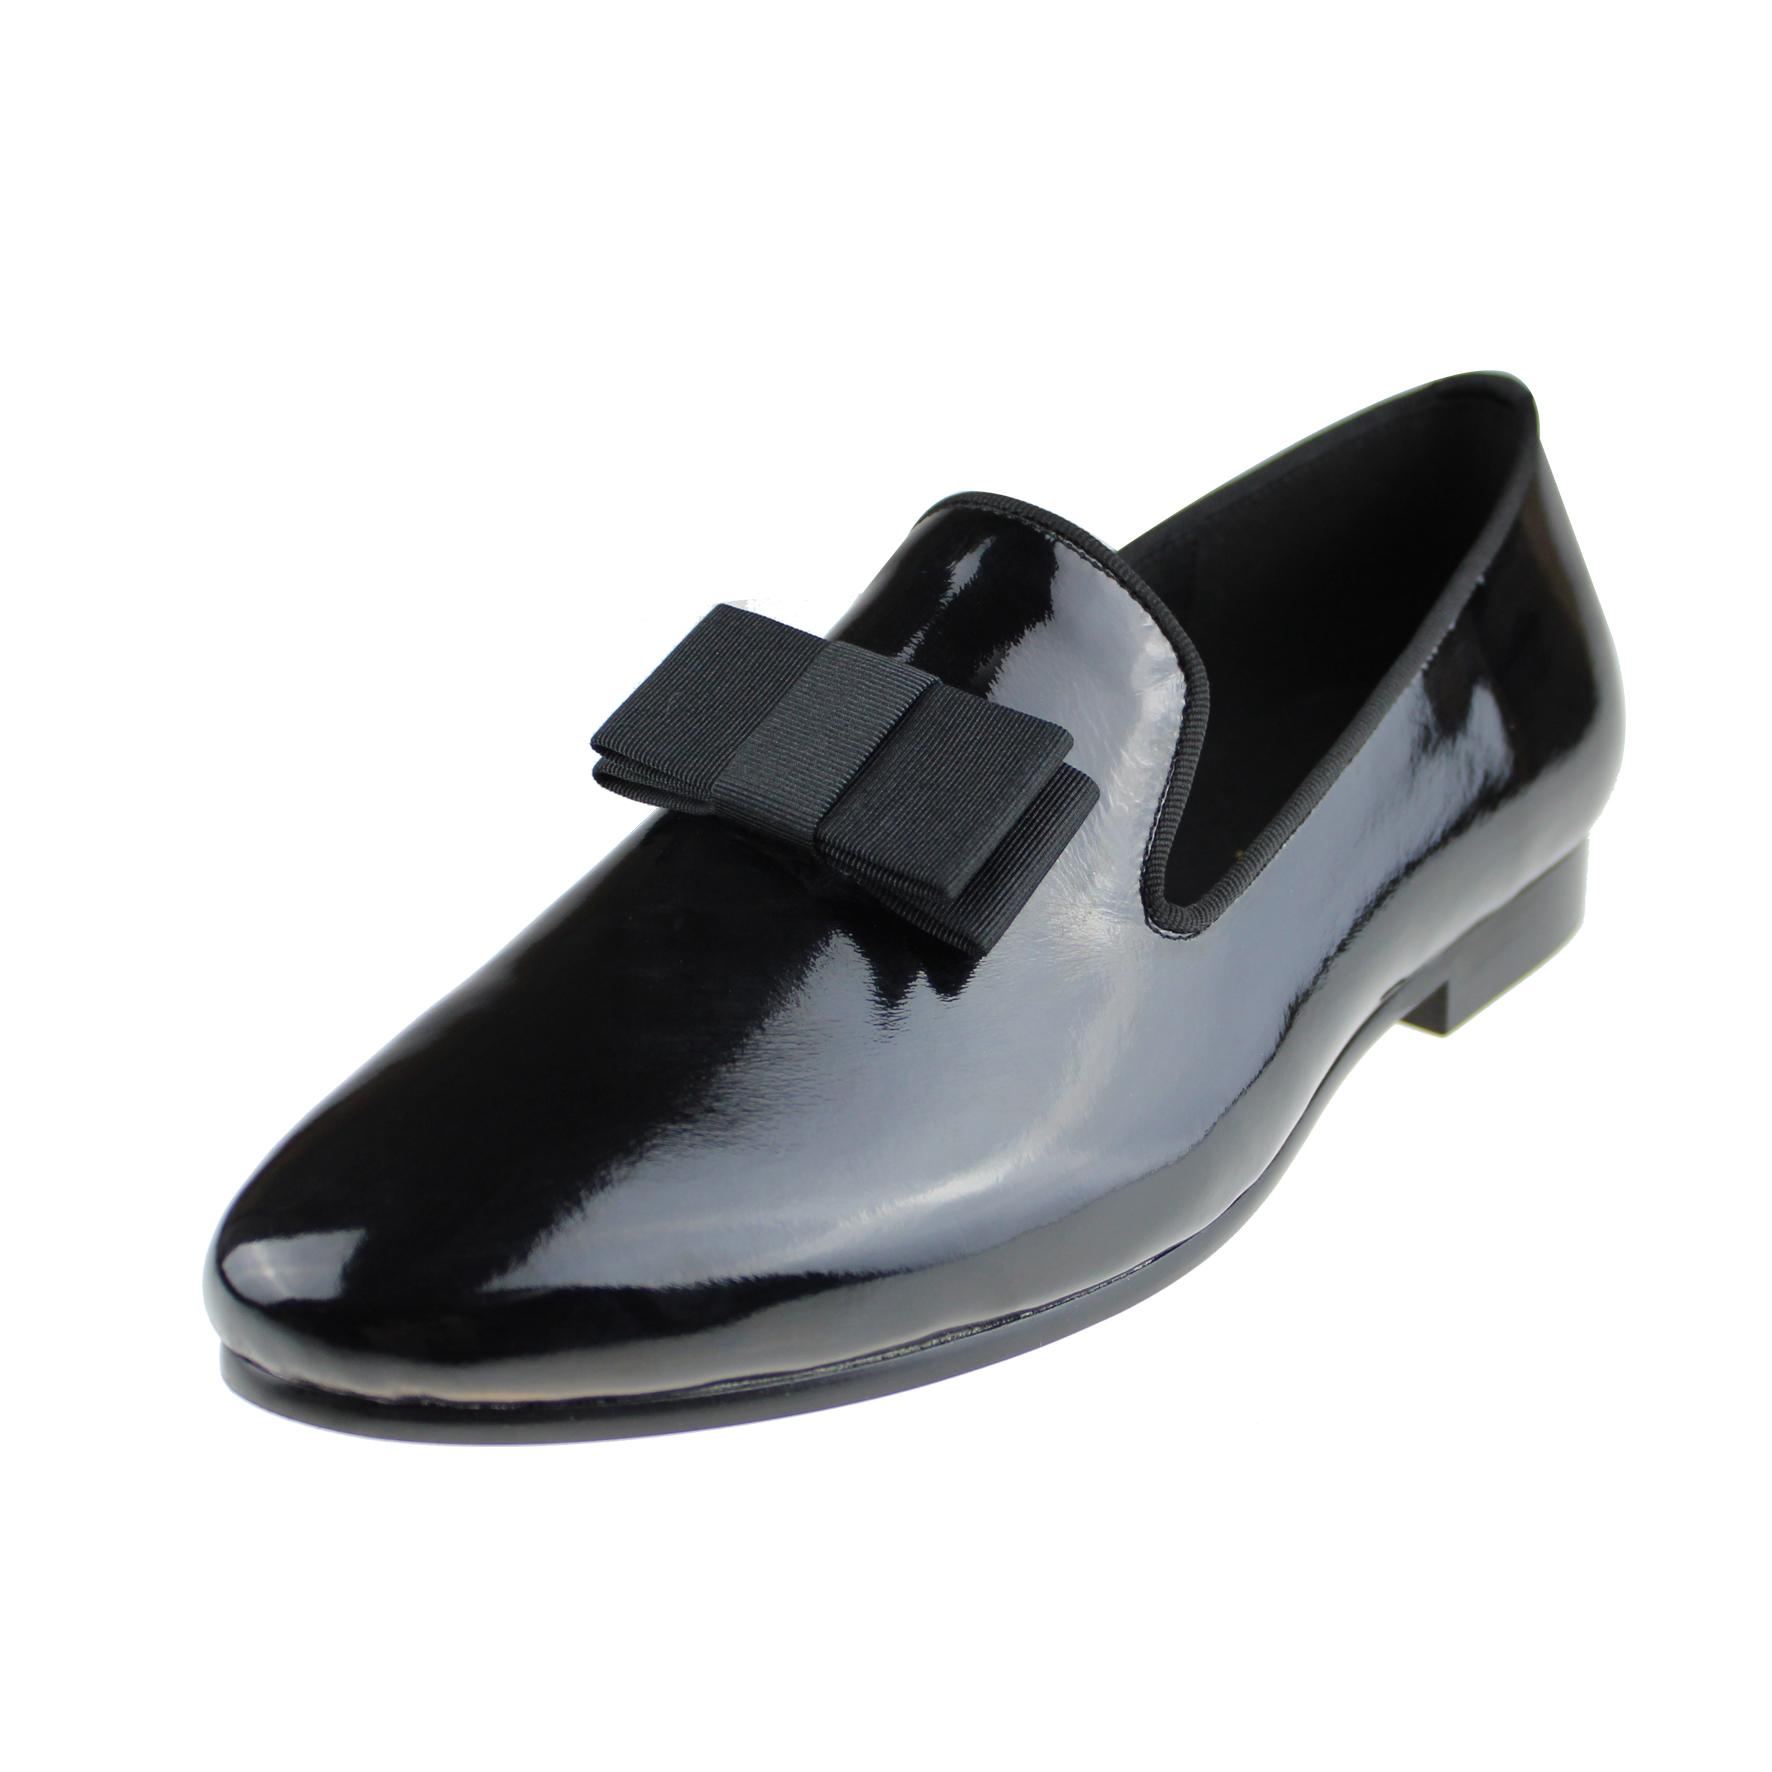 Harpelunde Bow Tie Men Loafers Black Patent Leather Handmade Dress Wedding Shoes Size 6 To 14 Designer Shoes High Heel Shoes From Harpelunde 88 45 Dhgate Com